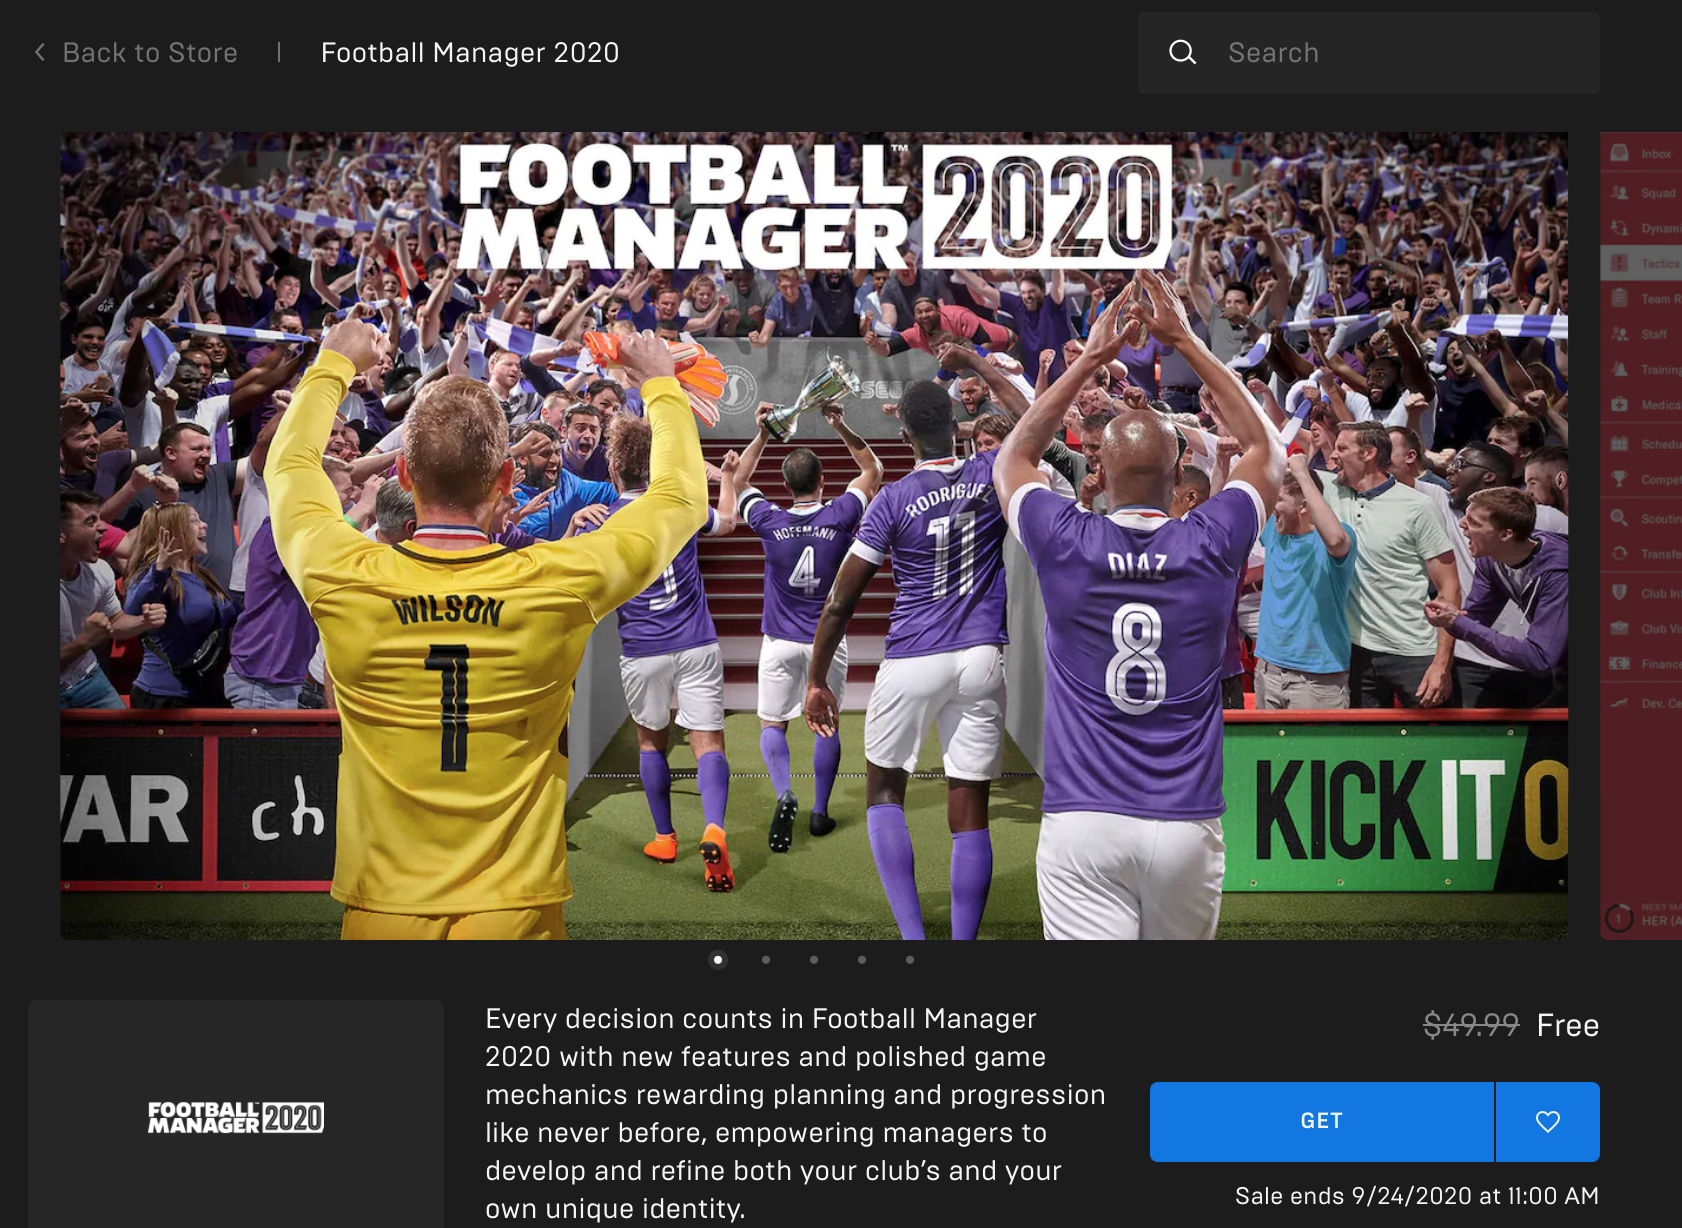 football manager 20 epic games store